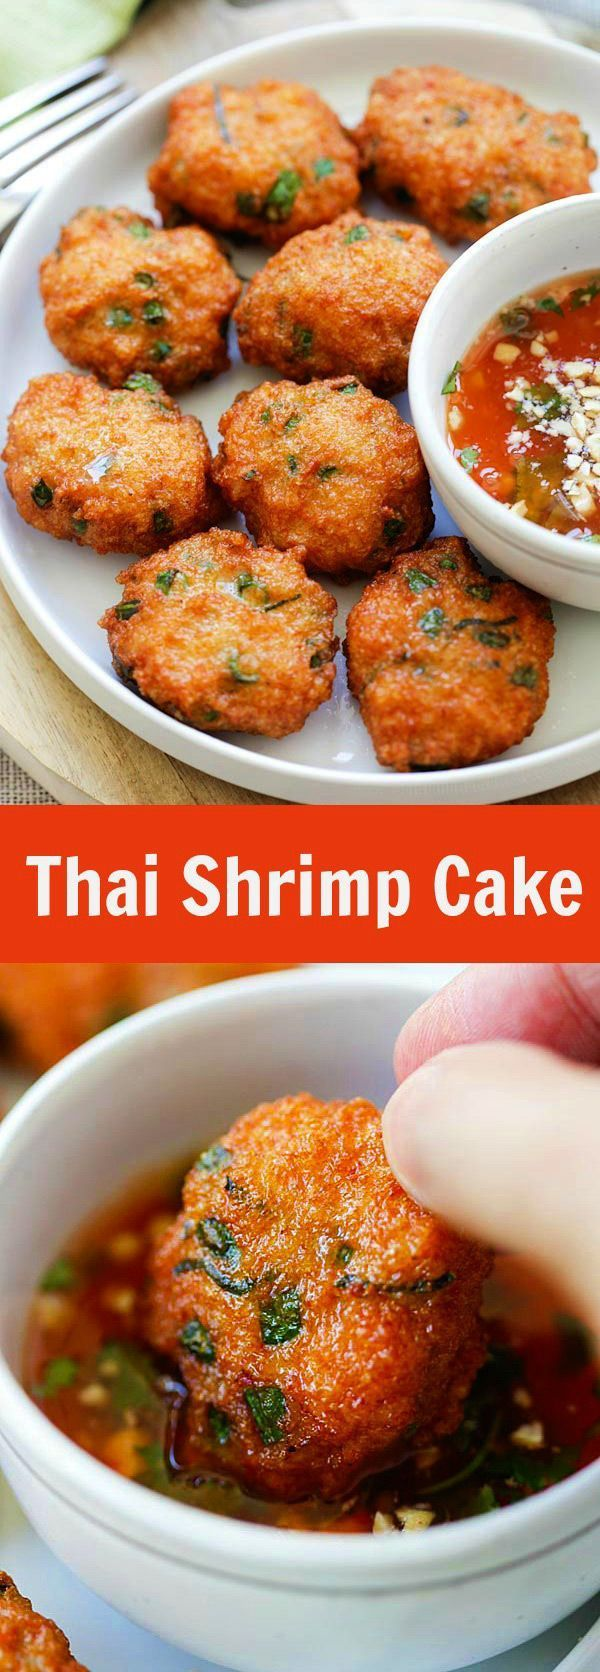 Thai Shrimp Cake – best Thai shrimp cake recipe loaded with shrimp, red curry, long beans and served with sweet chili sauce. So good | rasamalaysia.com